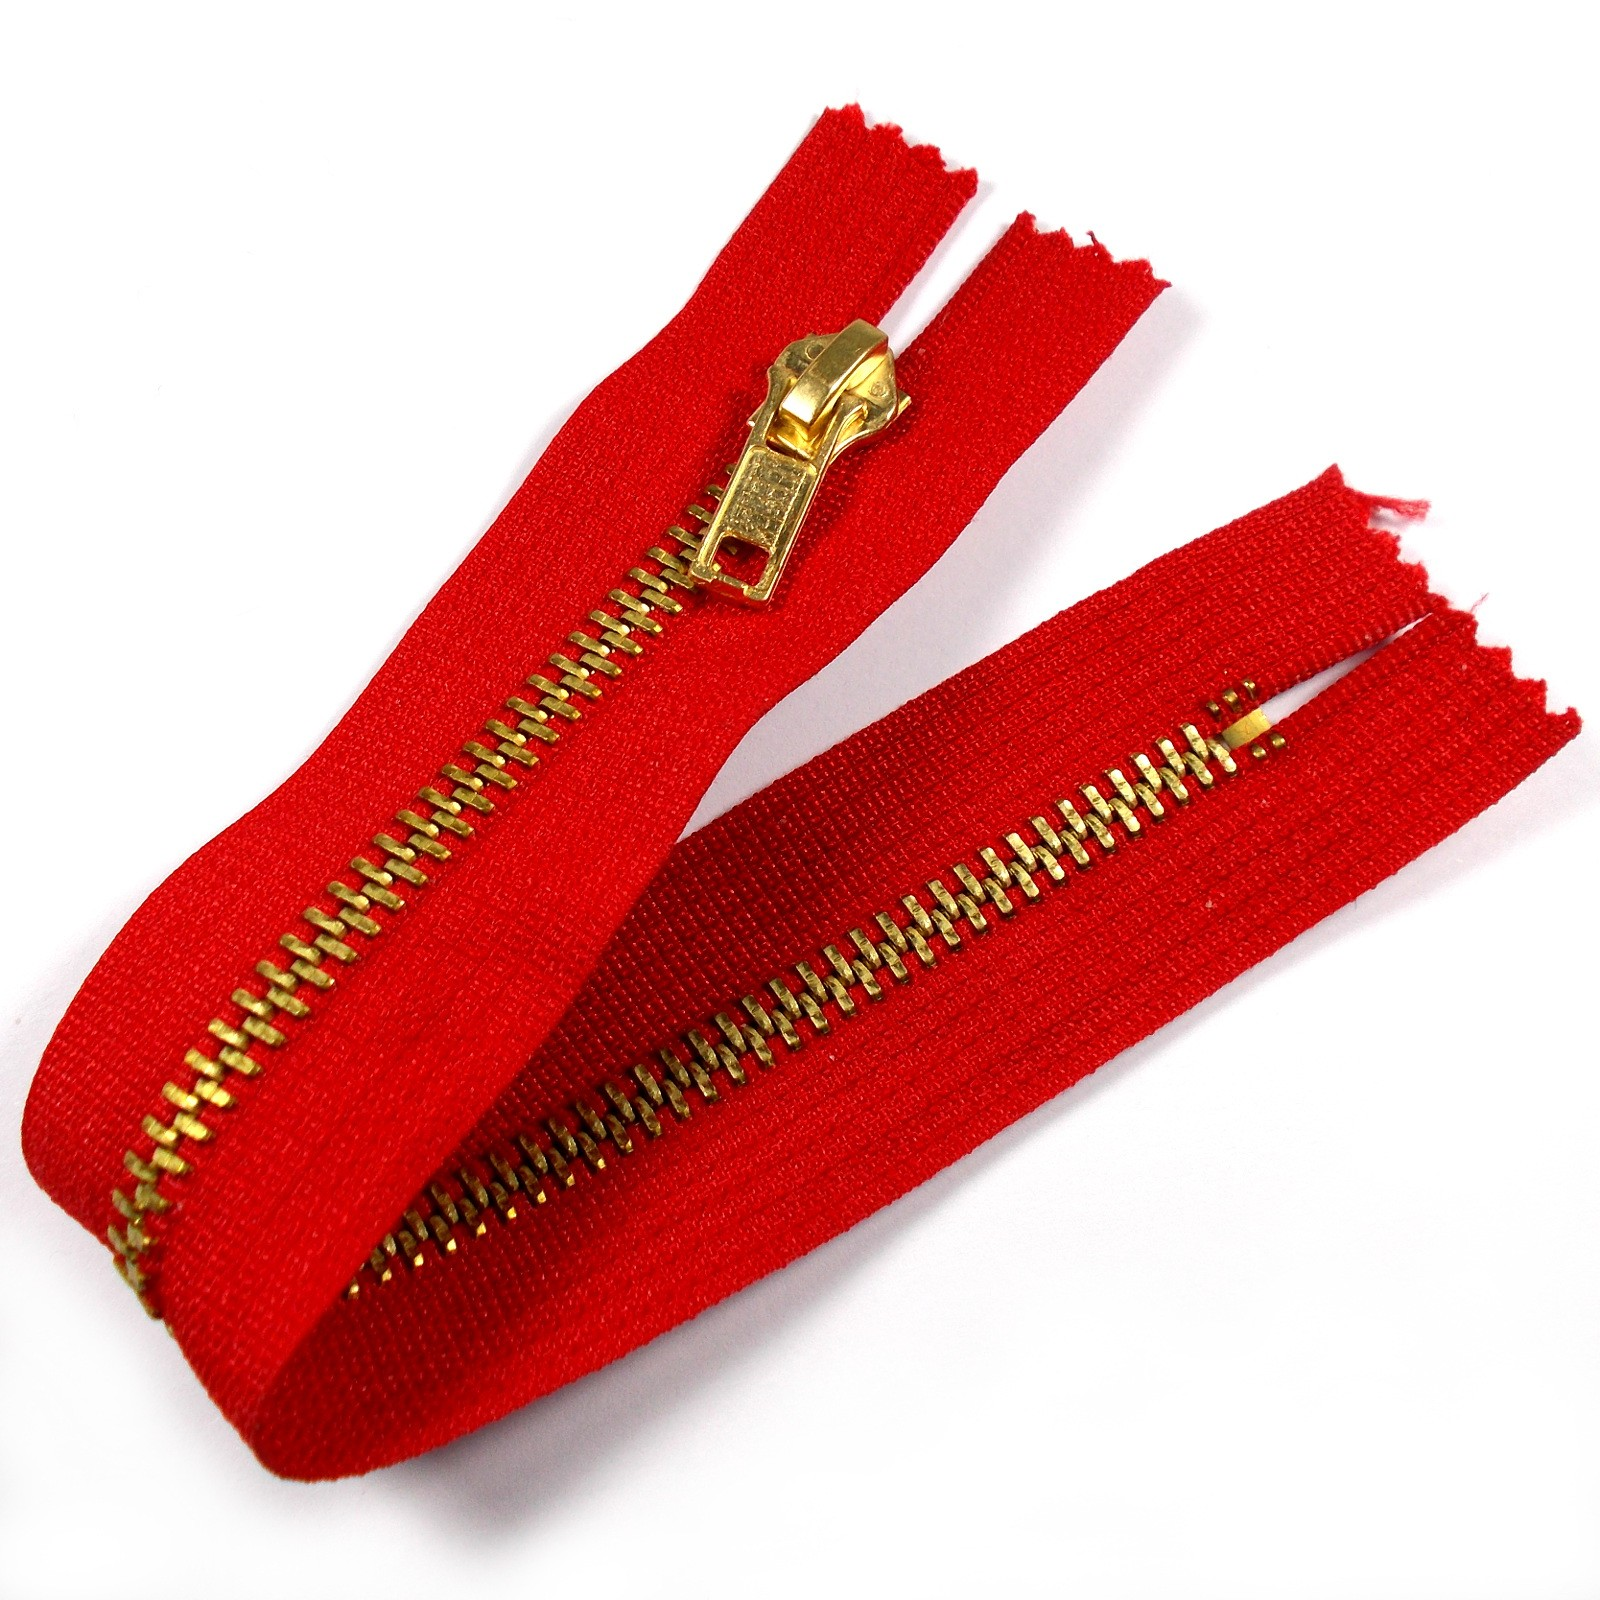 Gold Metal Trouser Jeans Zip Zipper 7 inch Red